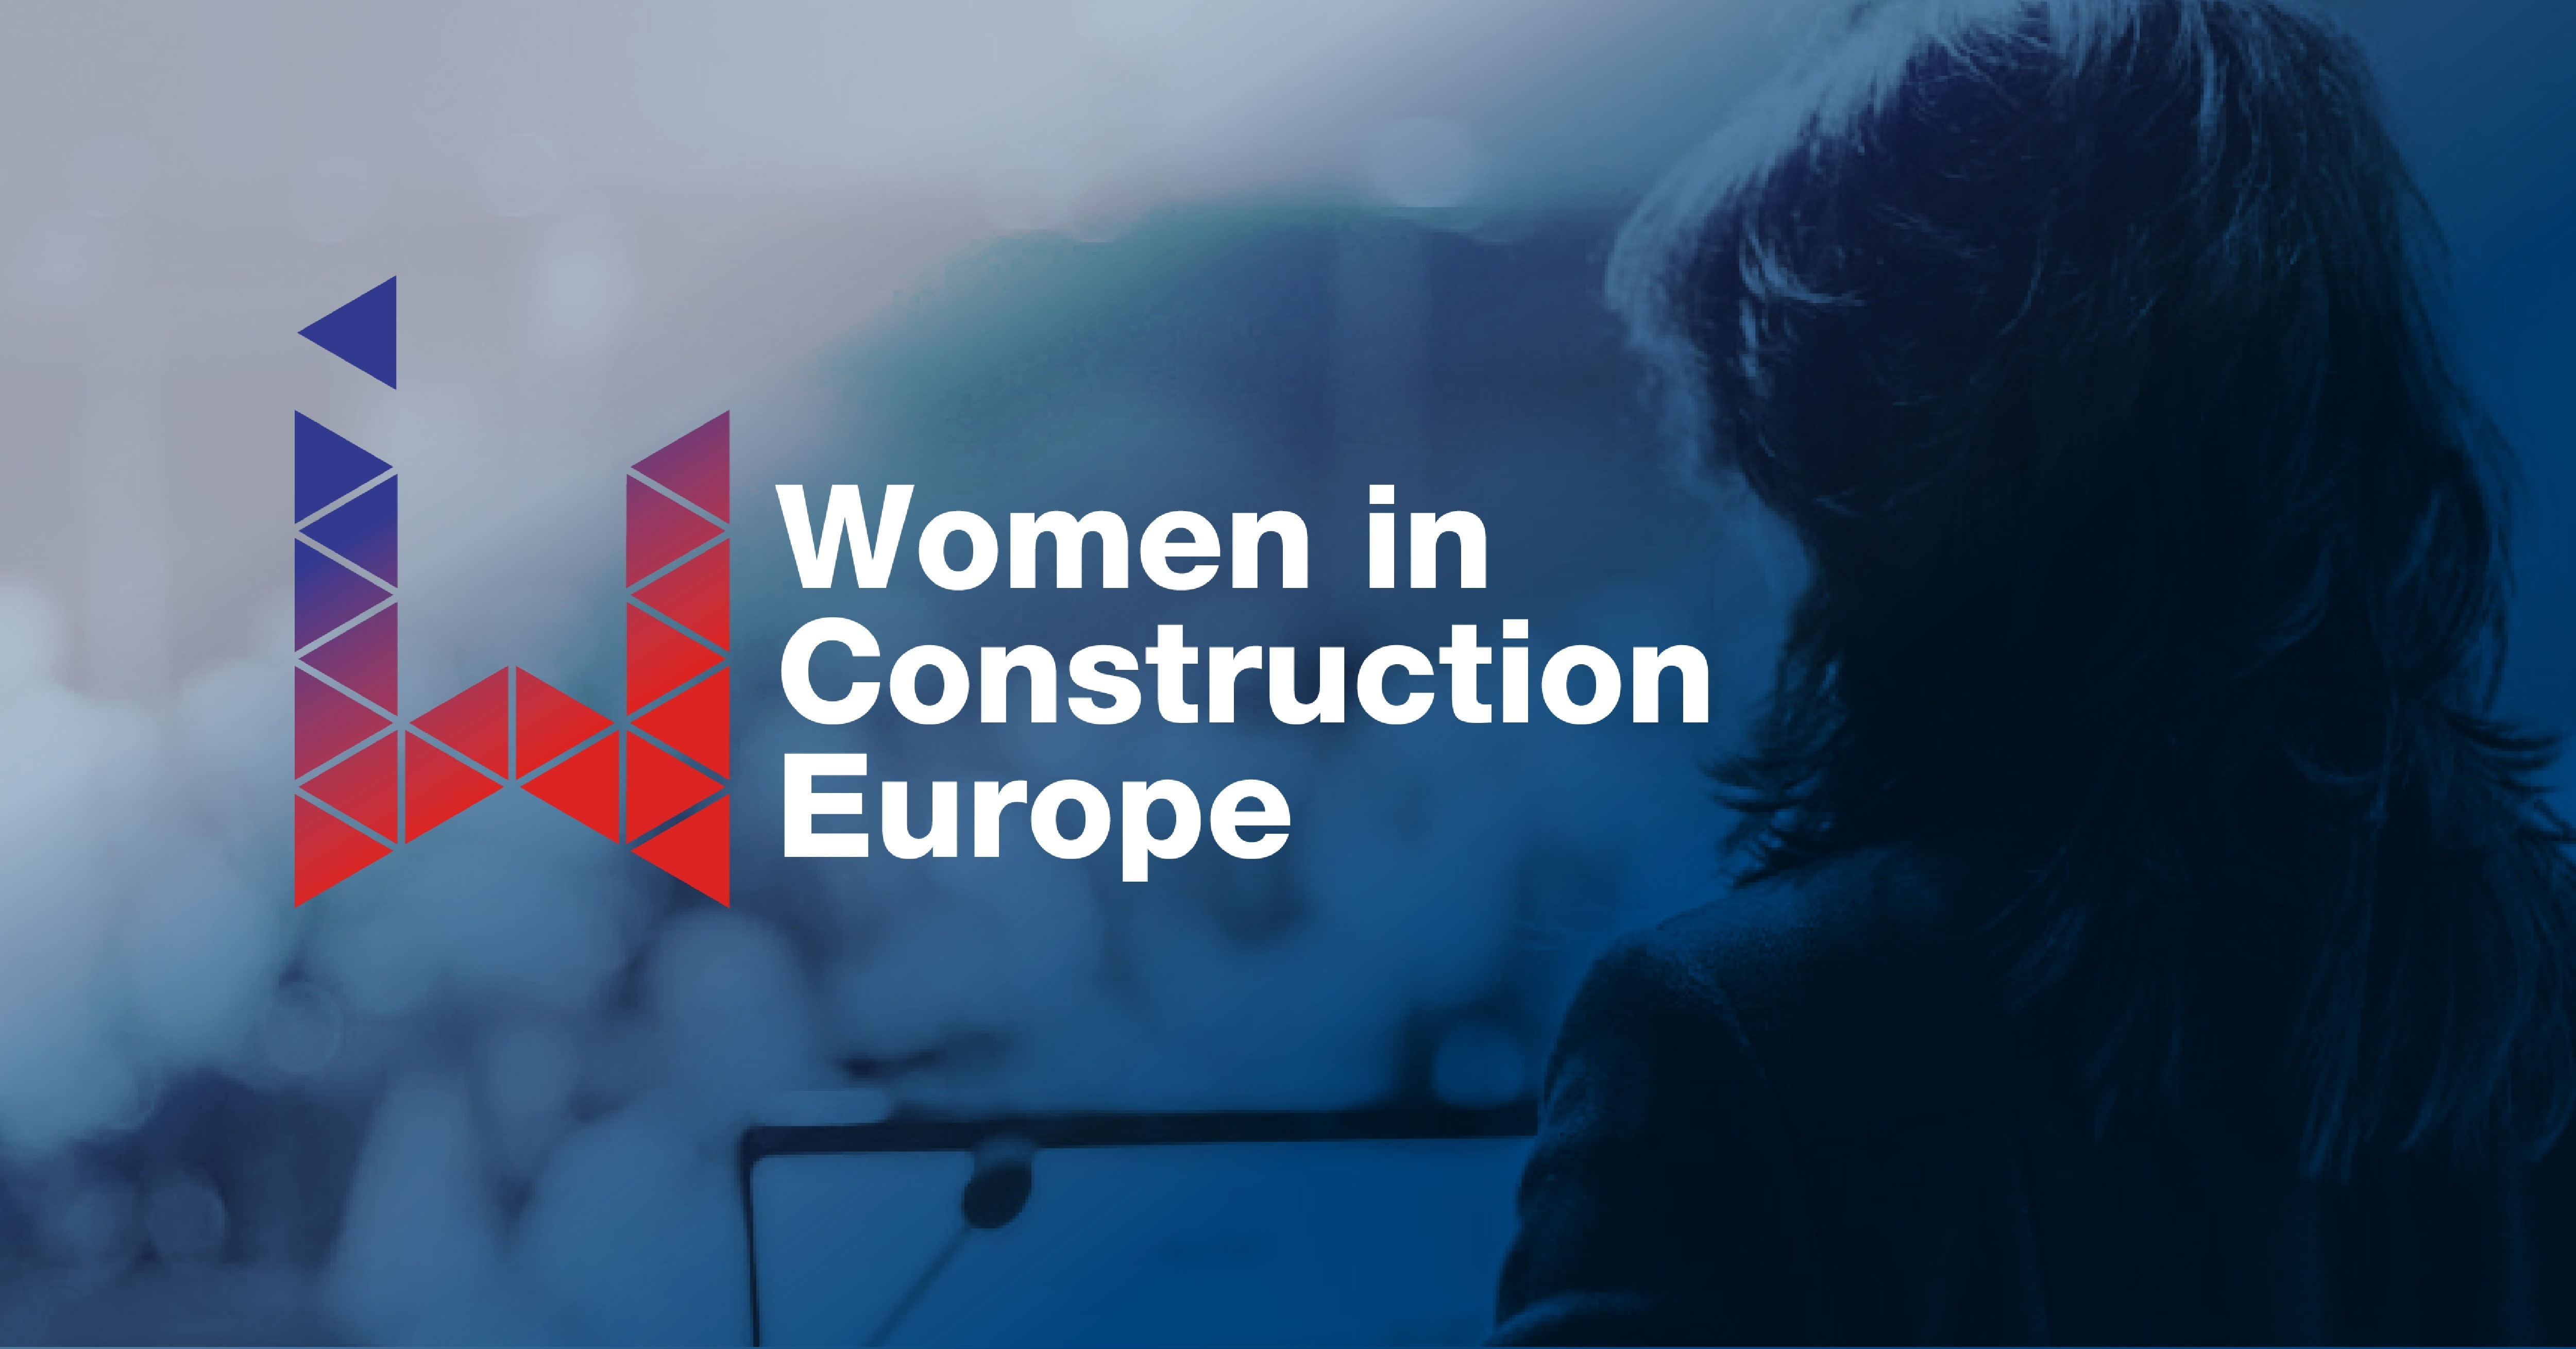 Women in Construction Europe - A Note From the Producer